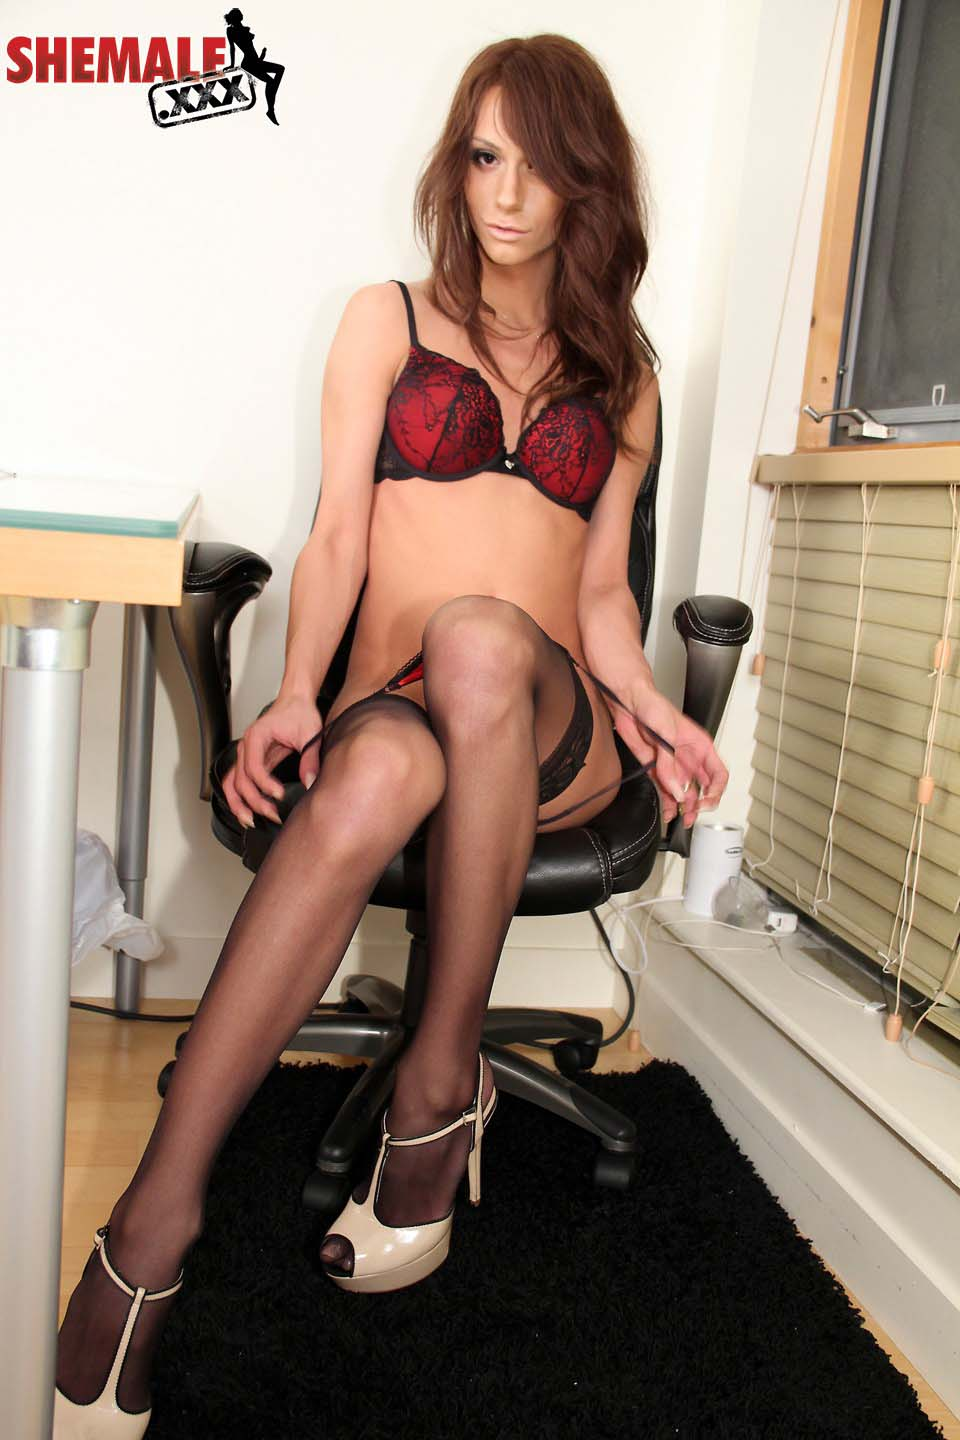 chloe rose stockings shemale